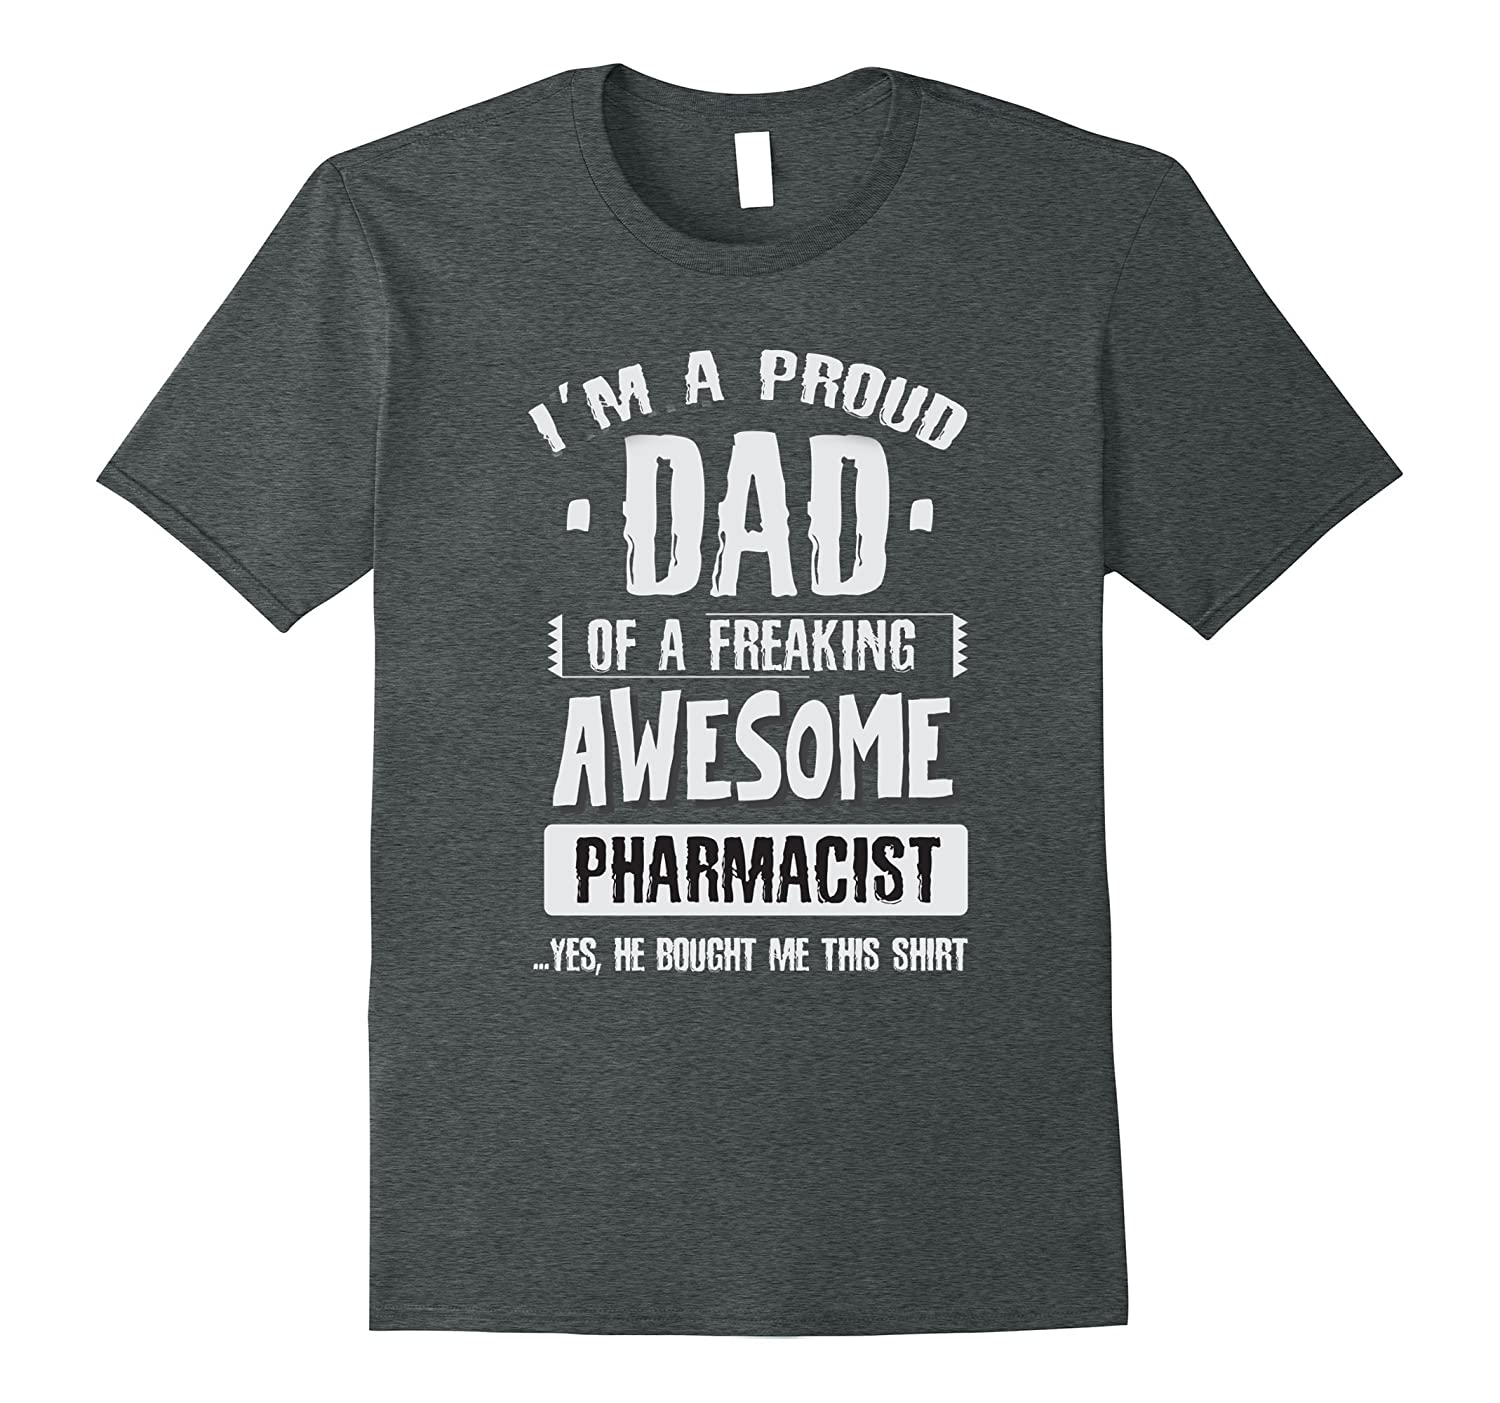 I'm a proud dad of a freaking awesome pharmacist tshirts